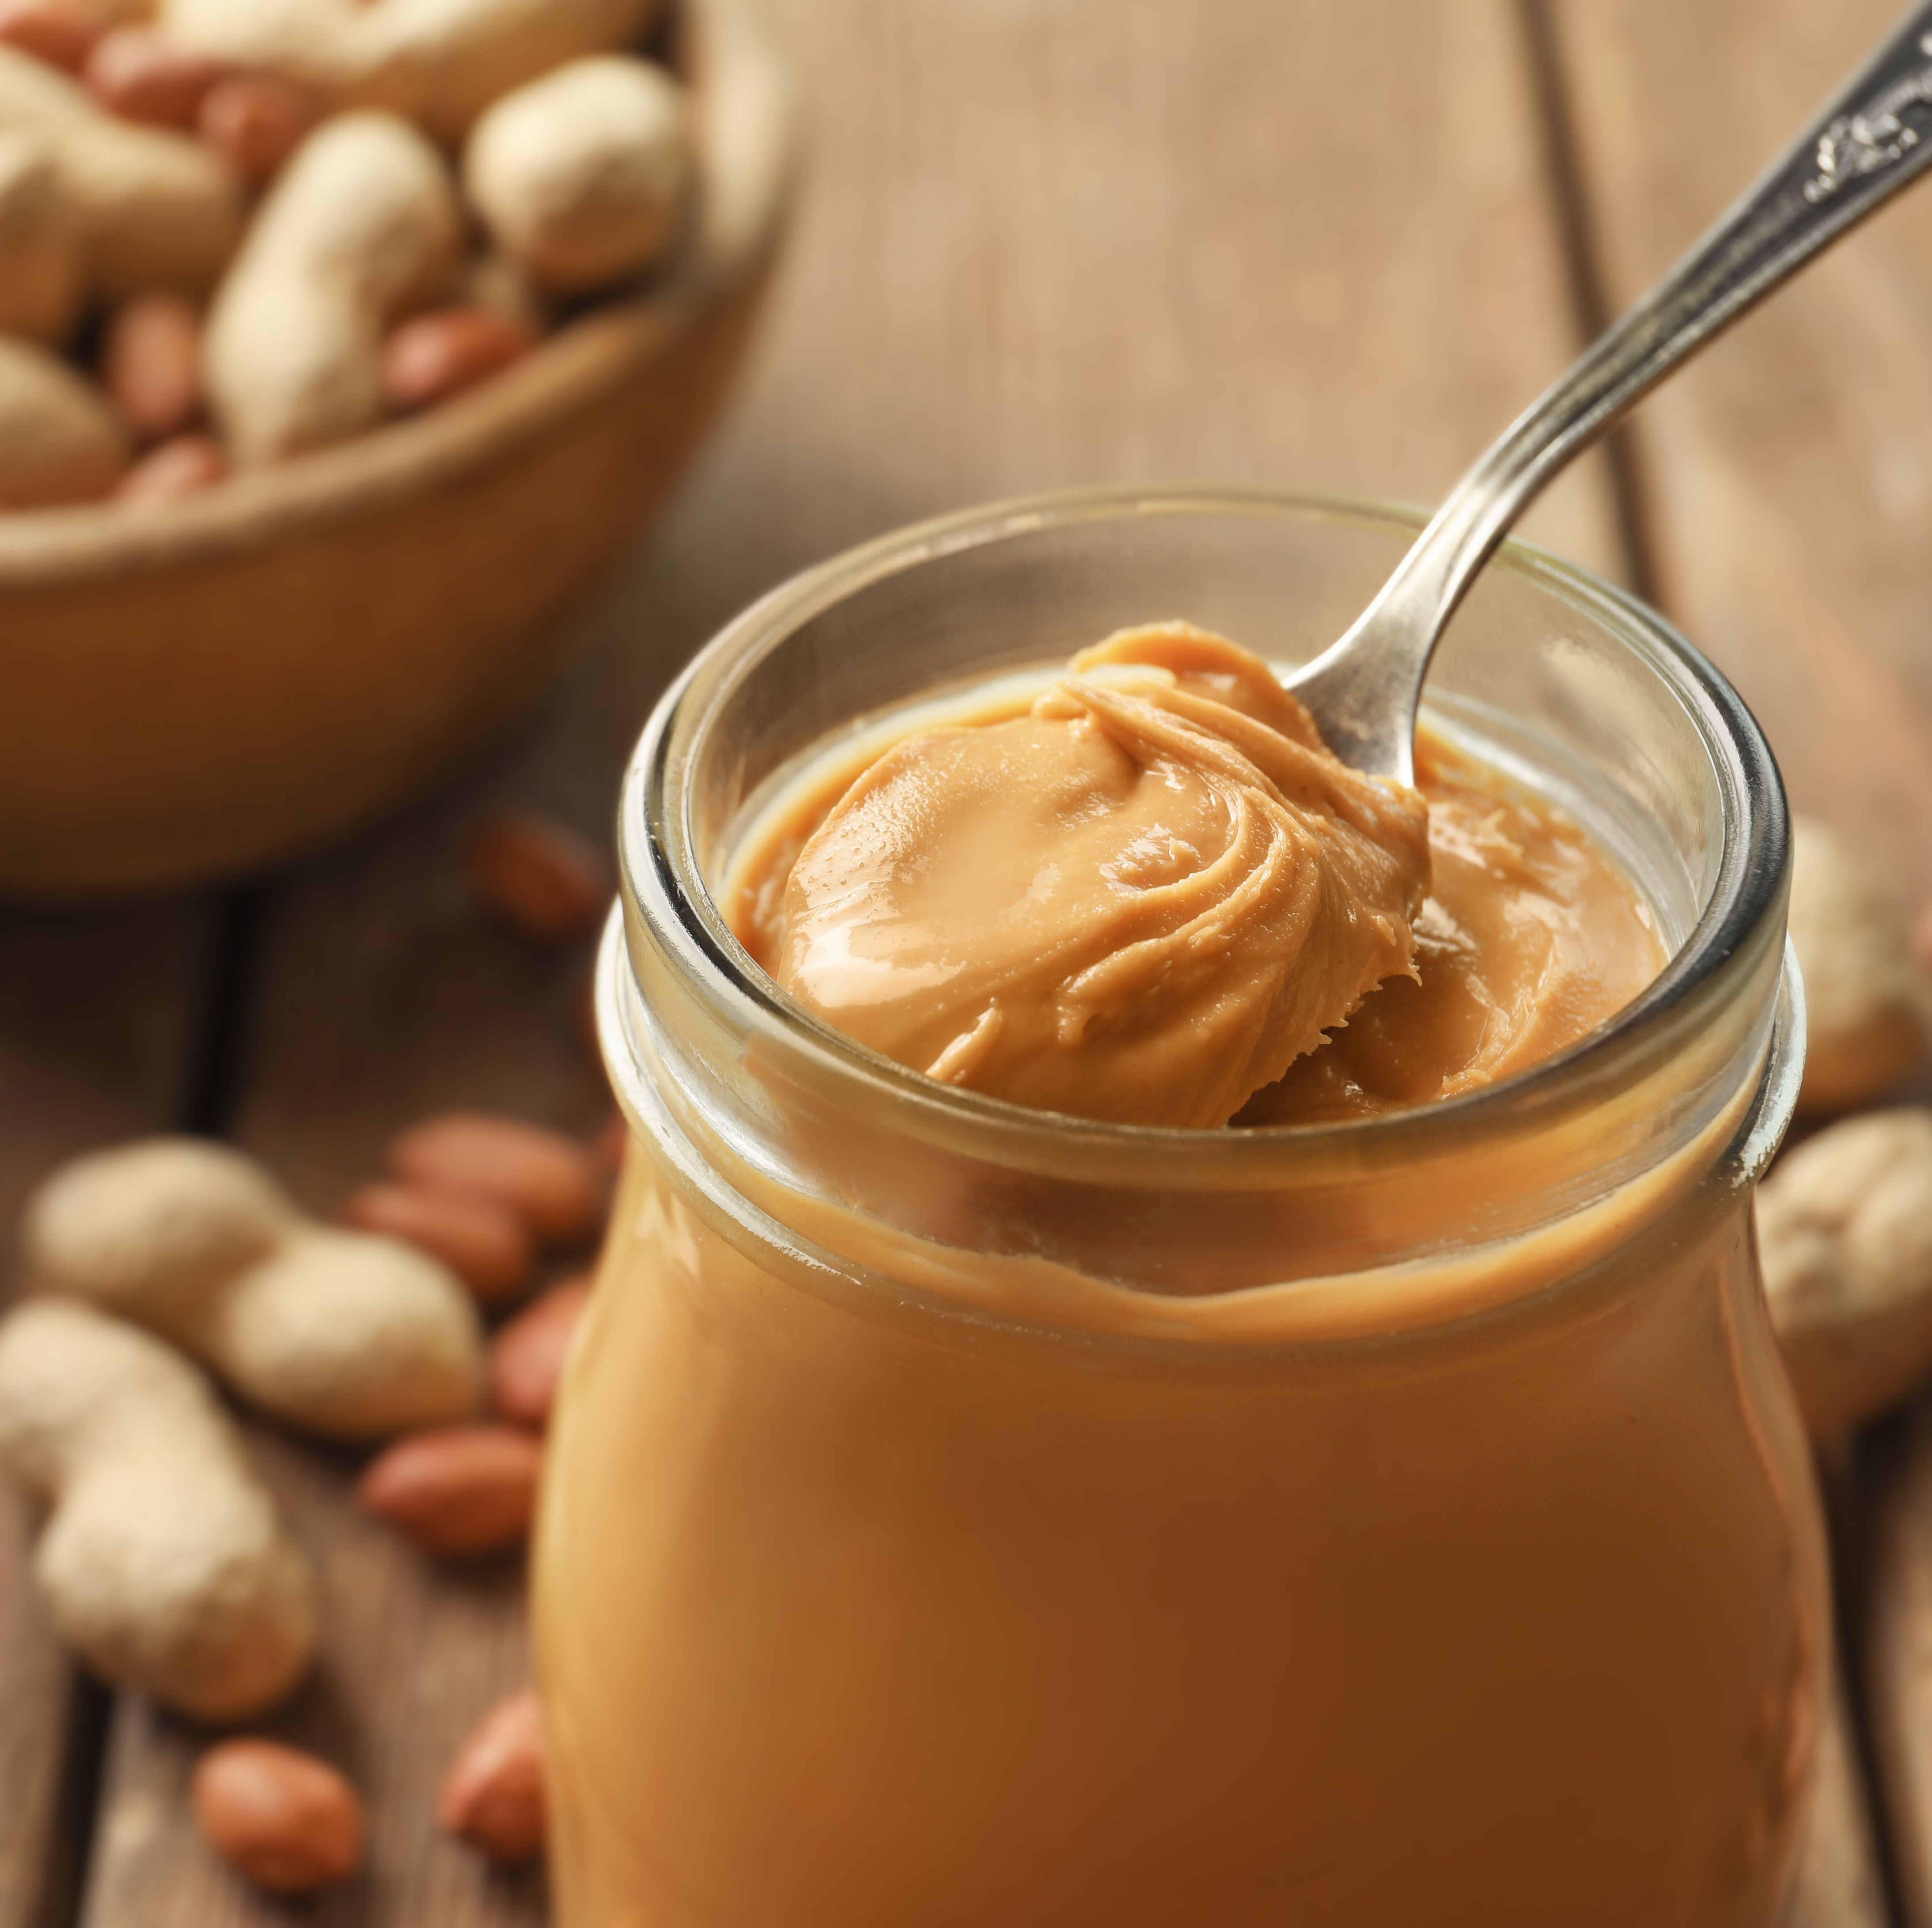 Spoon and glass jar with creamy peanut butter on kitchen table, closeup